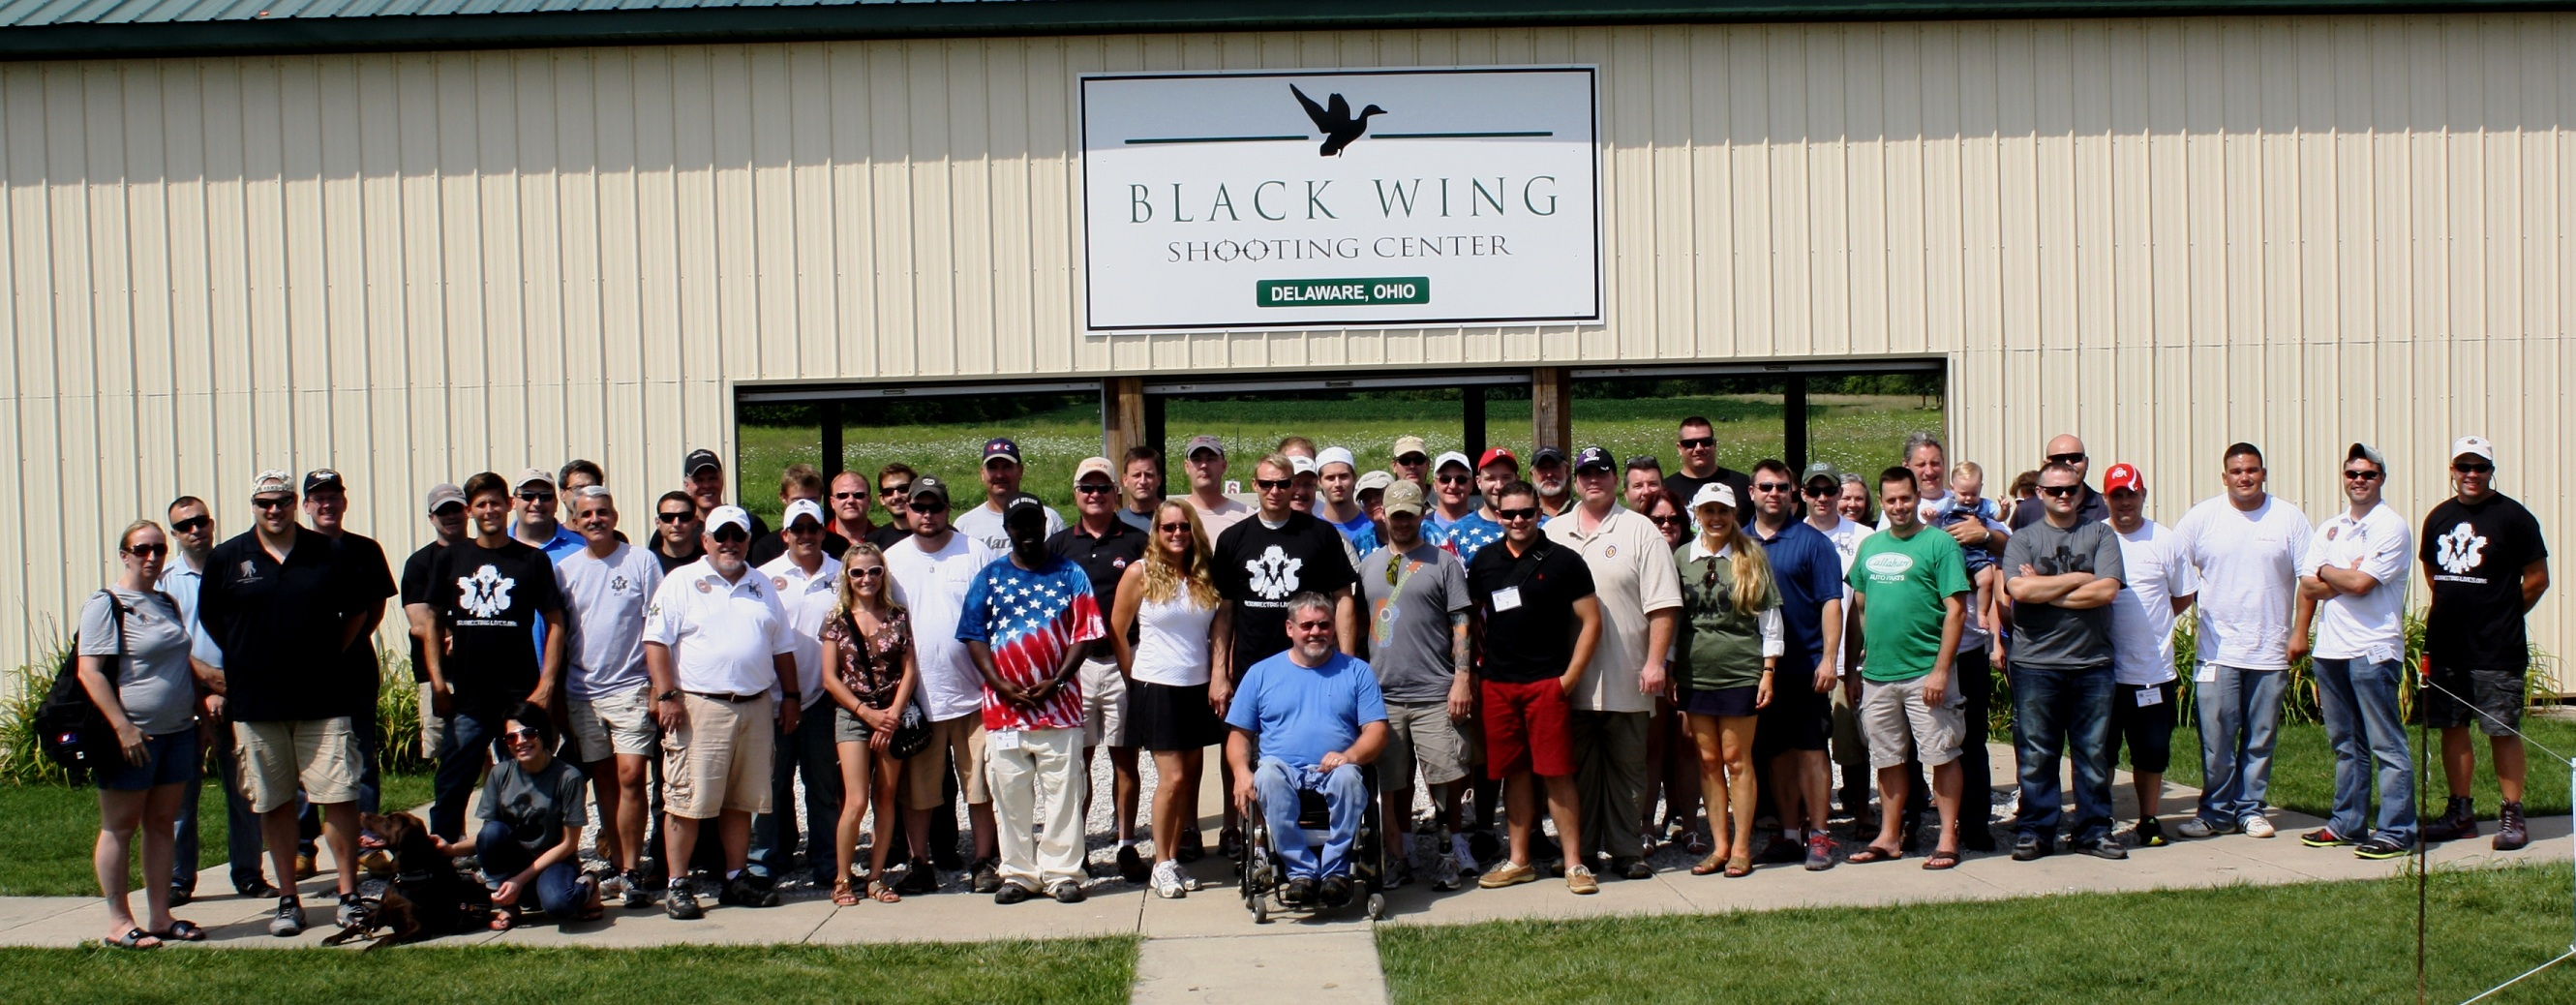 2013 Trap Shoot Event Participants